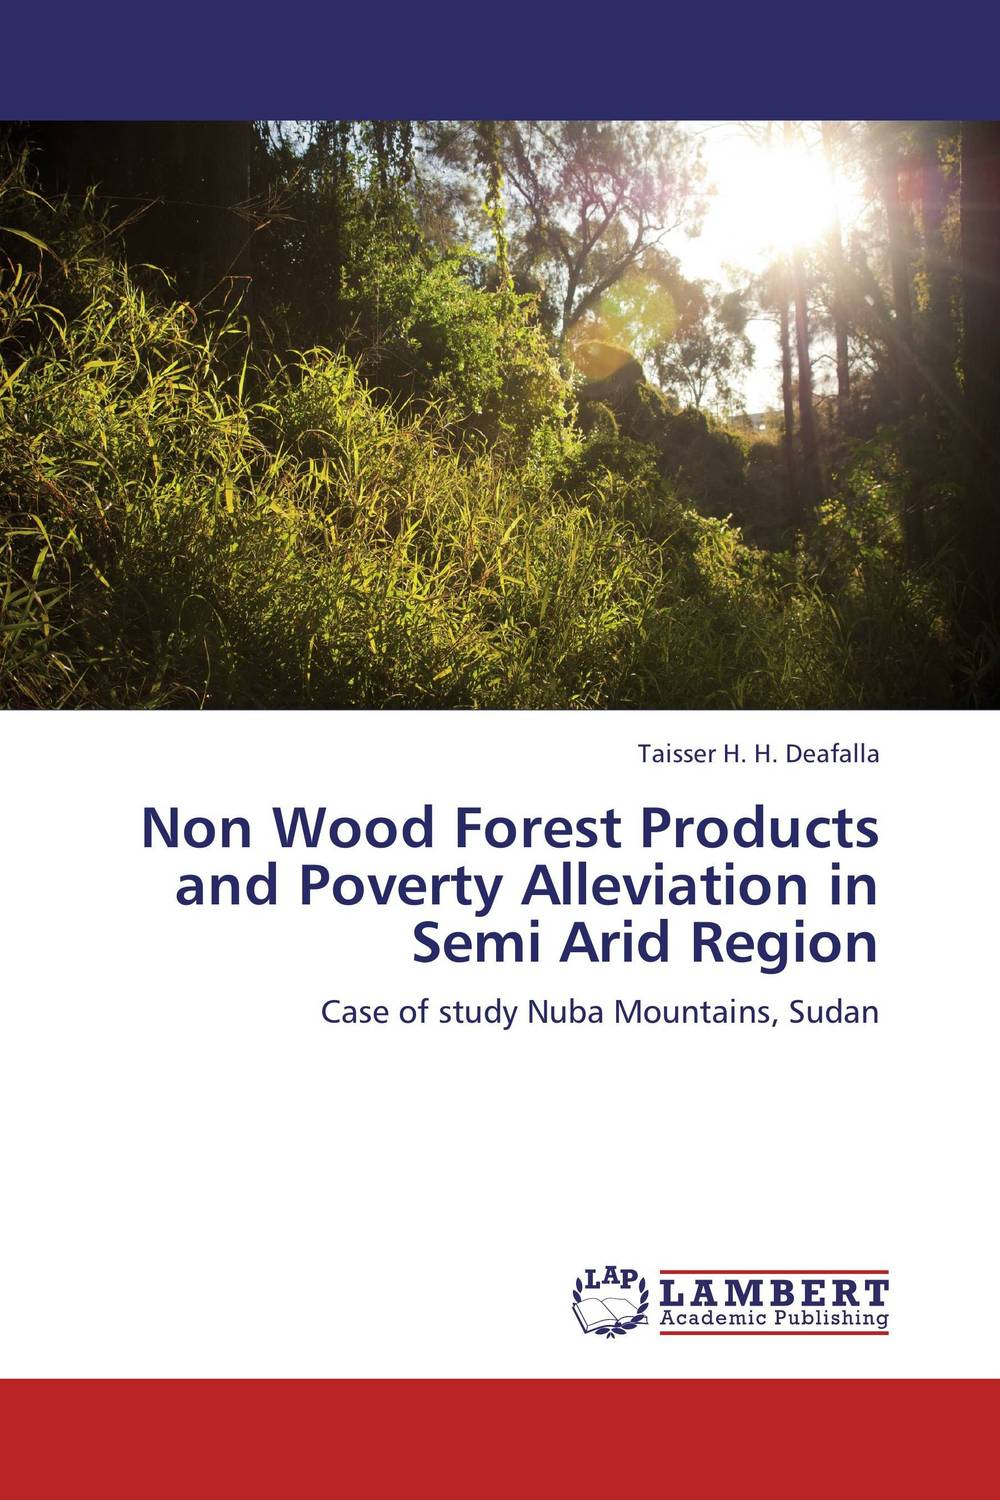 Non Wood Forest Products and Poverty Alleviation   in Semi Arid Region perlin a forest journey – the role of wood in the development of civilization cloth